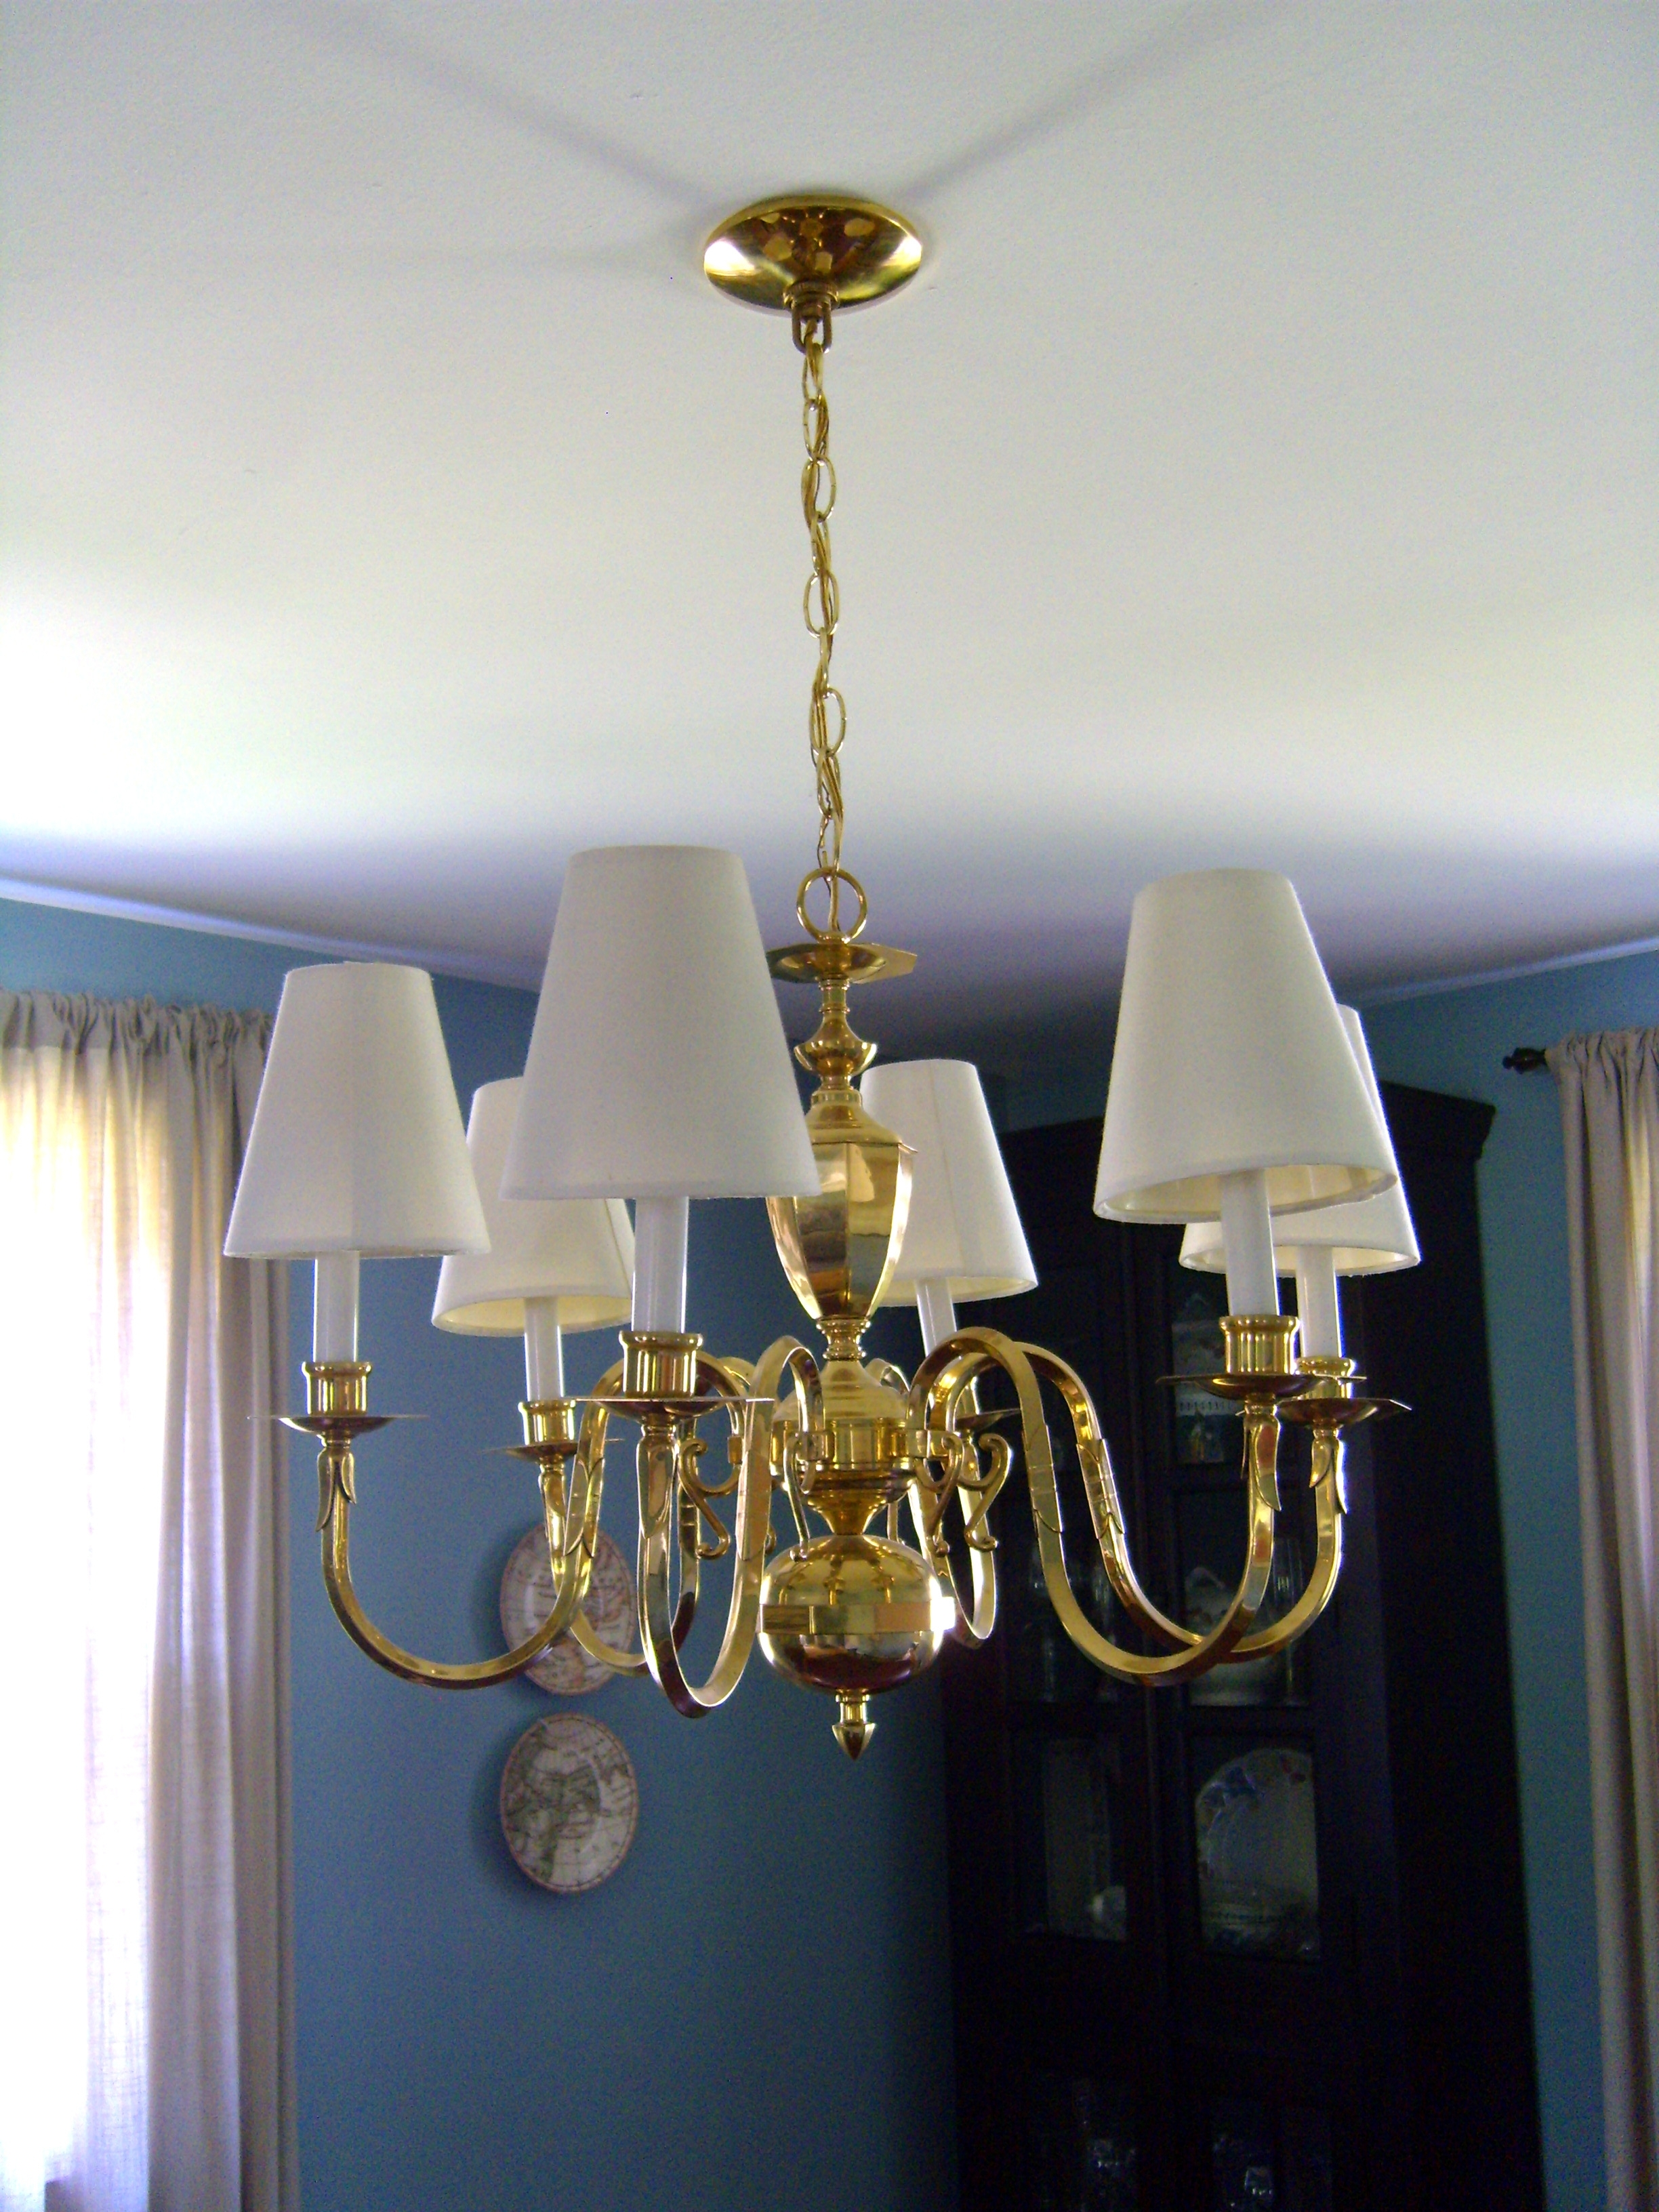 Chandelier Lampshades With Regard To Widely Used Furniture : Small Drum Lamp Shades Chandelier Saving Space Mini (View 3 of 20)